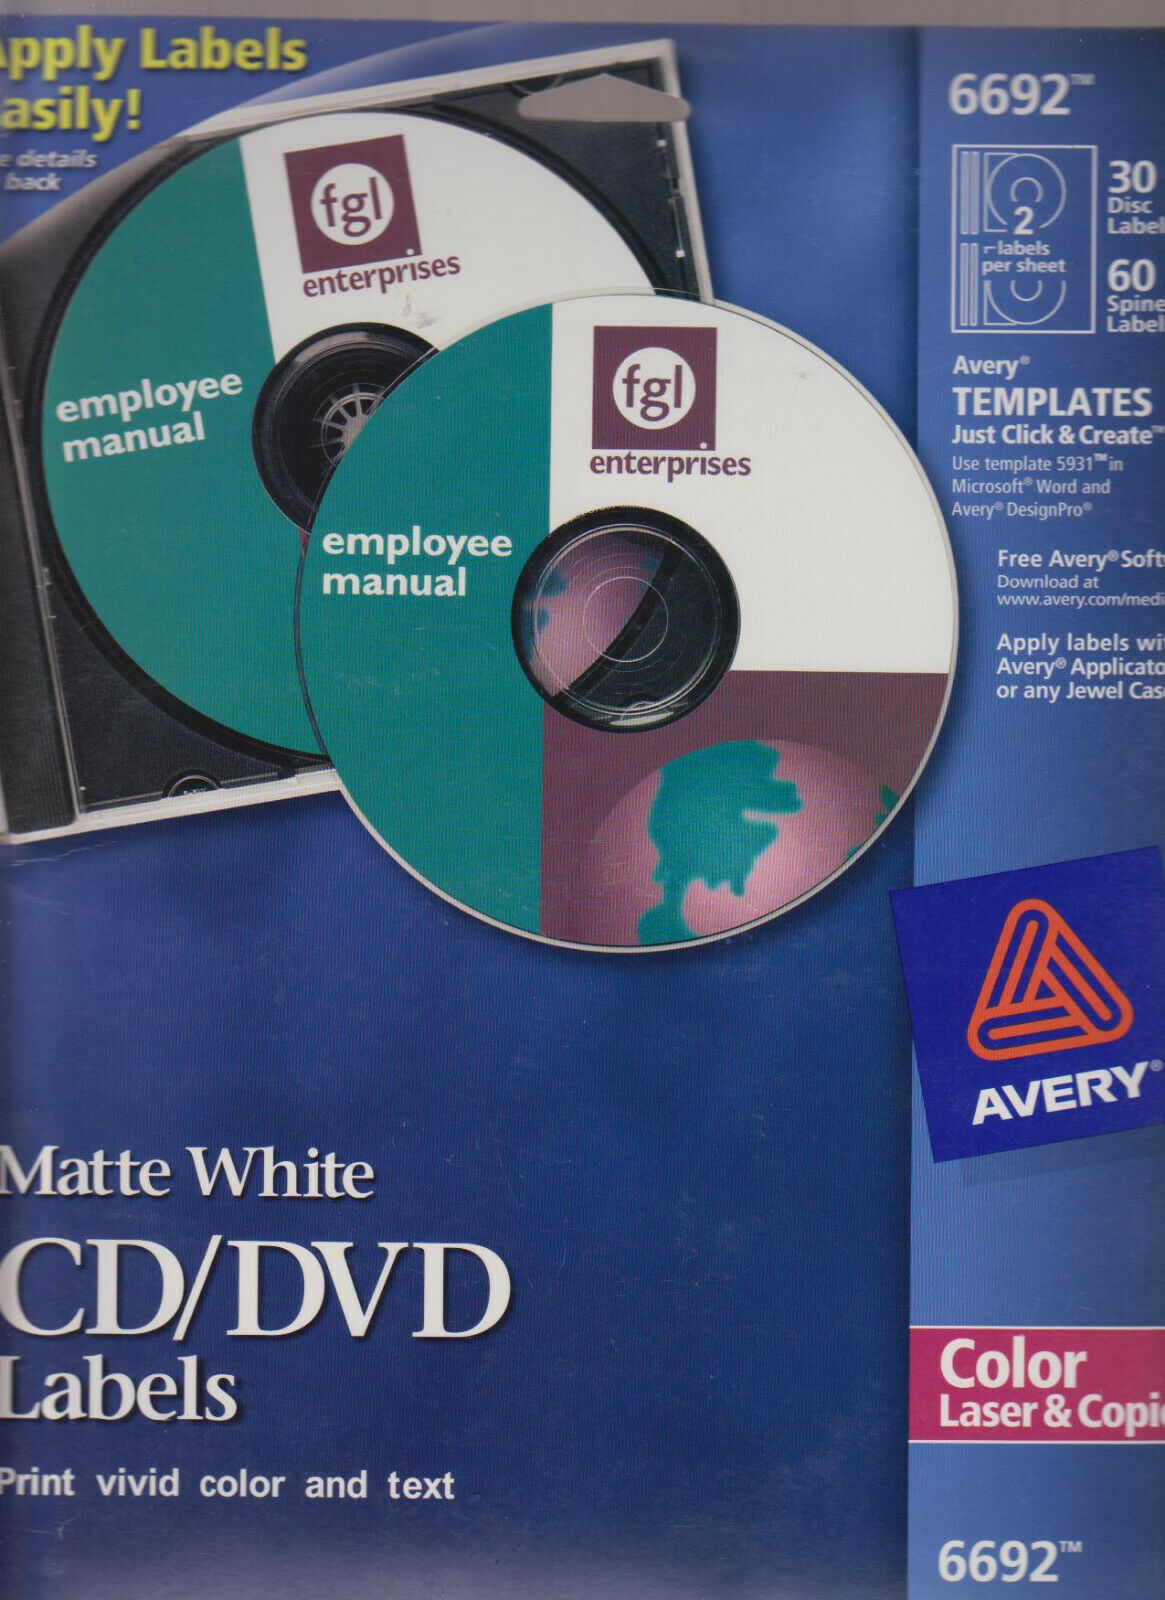 Primary image for Avery Matt White 6692 CD Labels 30 Disc Labels / 60 Spine Labels